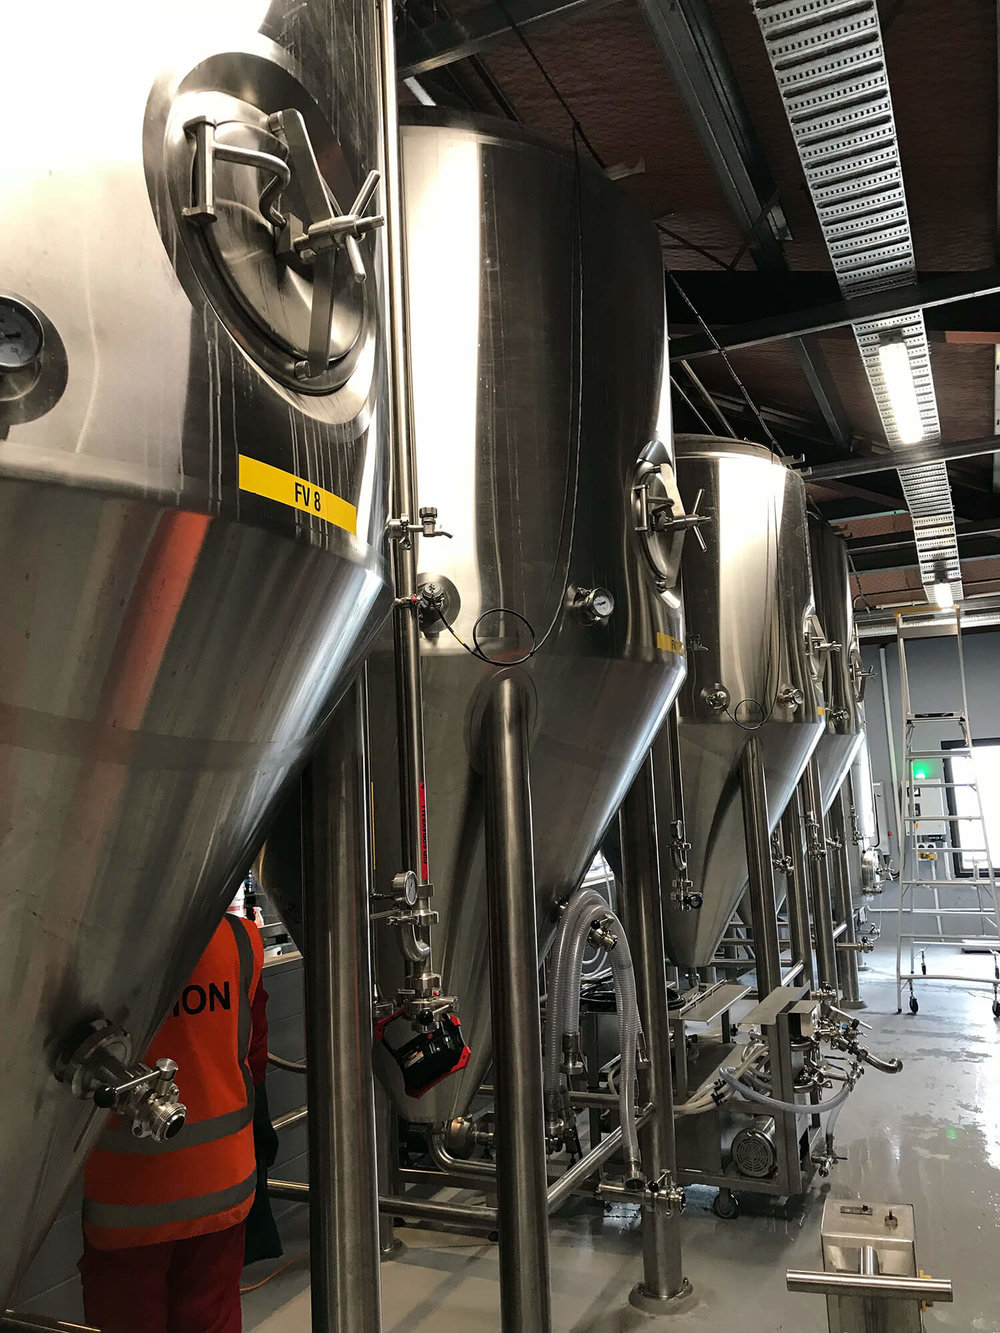 Brewing equipment and process pipe lines at The Fermentist Brewery in Christchurch